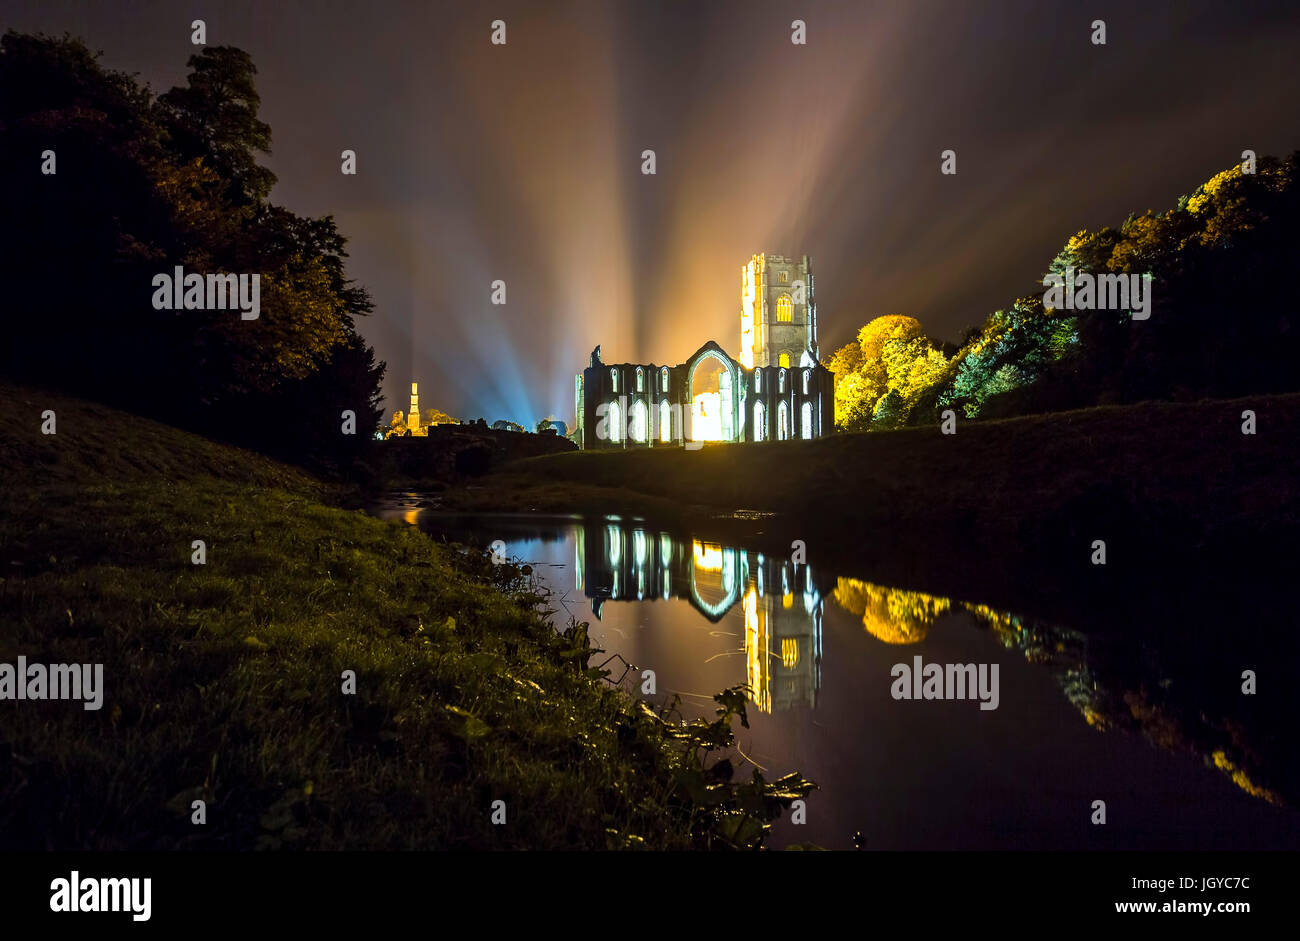 Abbaye de fontaines Photo Stock